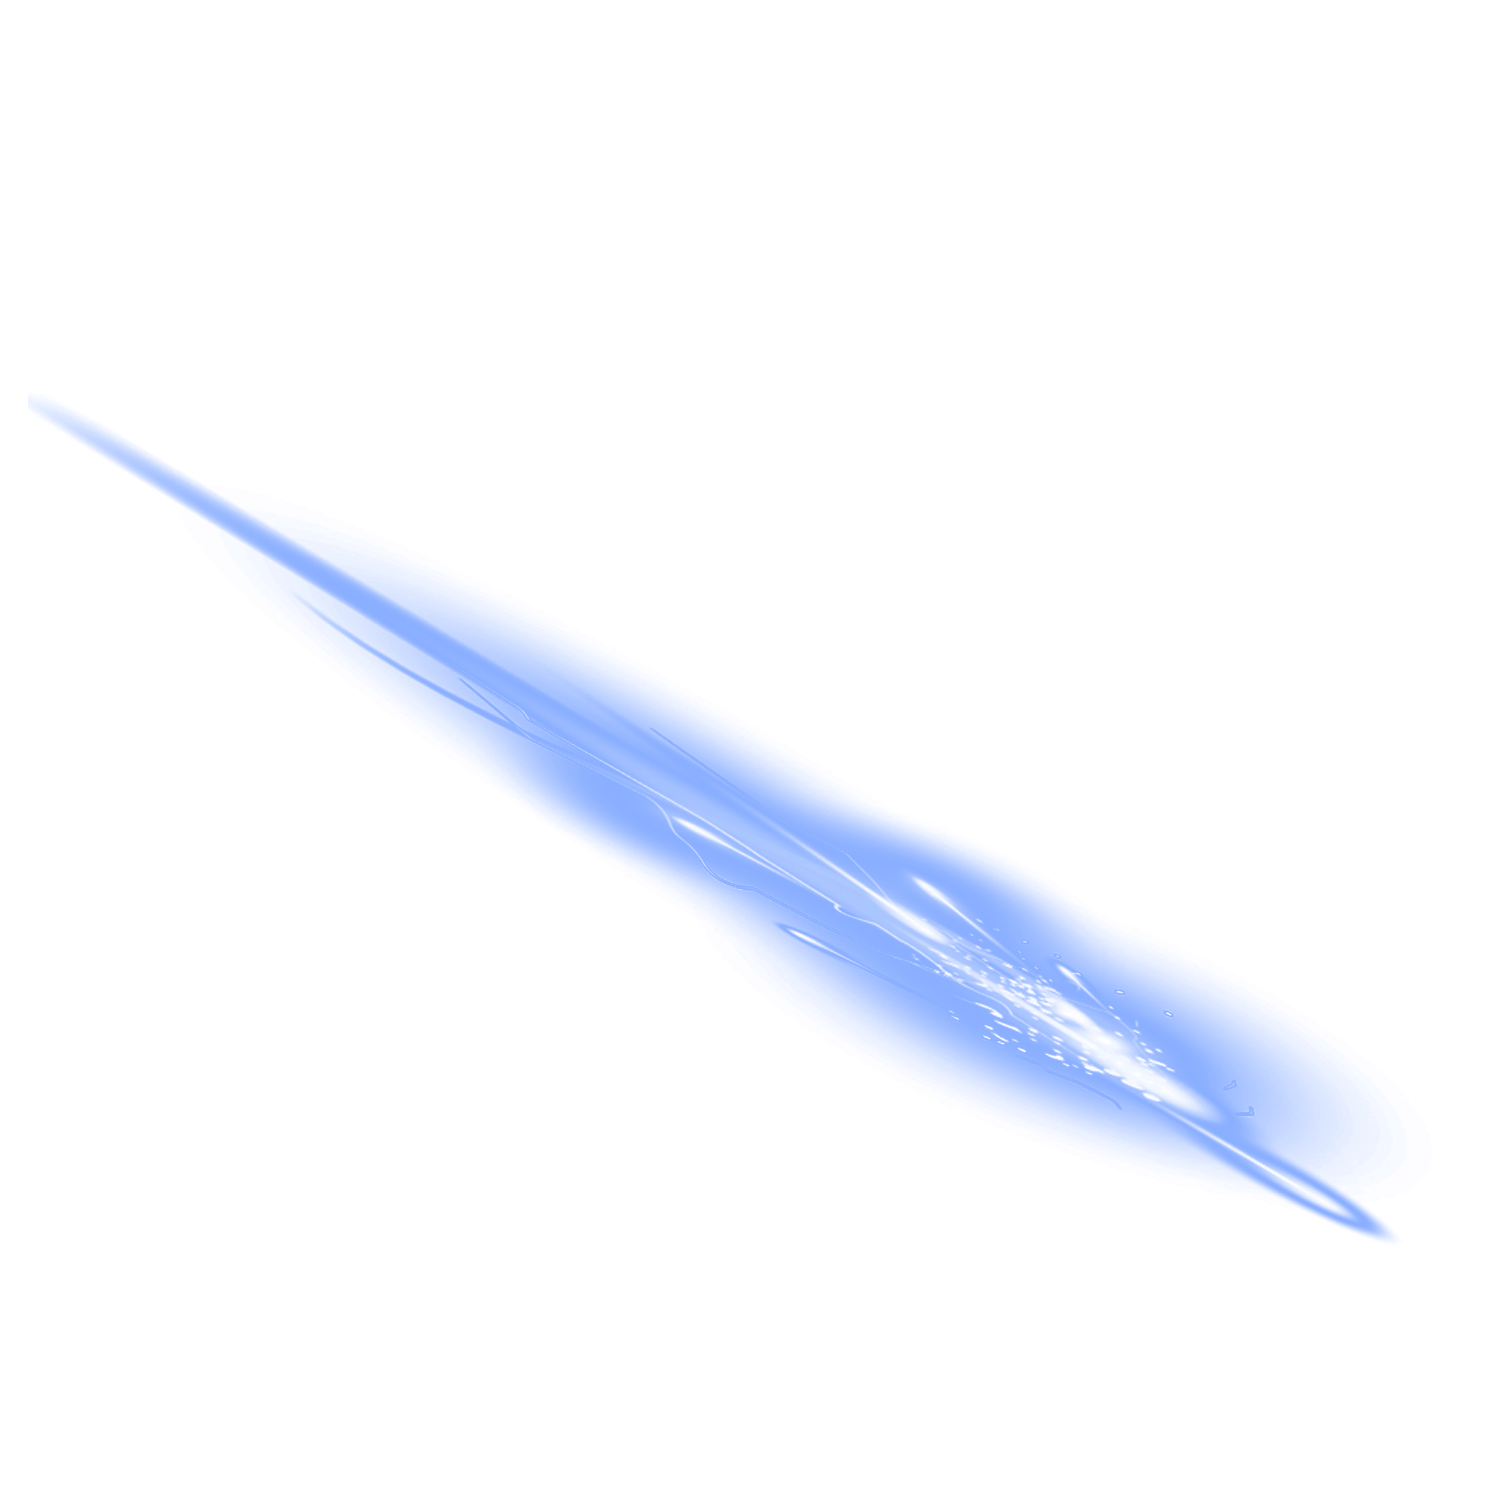 Laser png. Light blue beam transprent